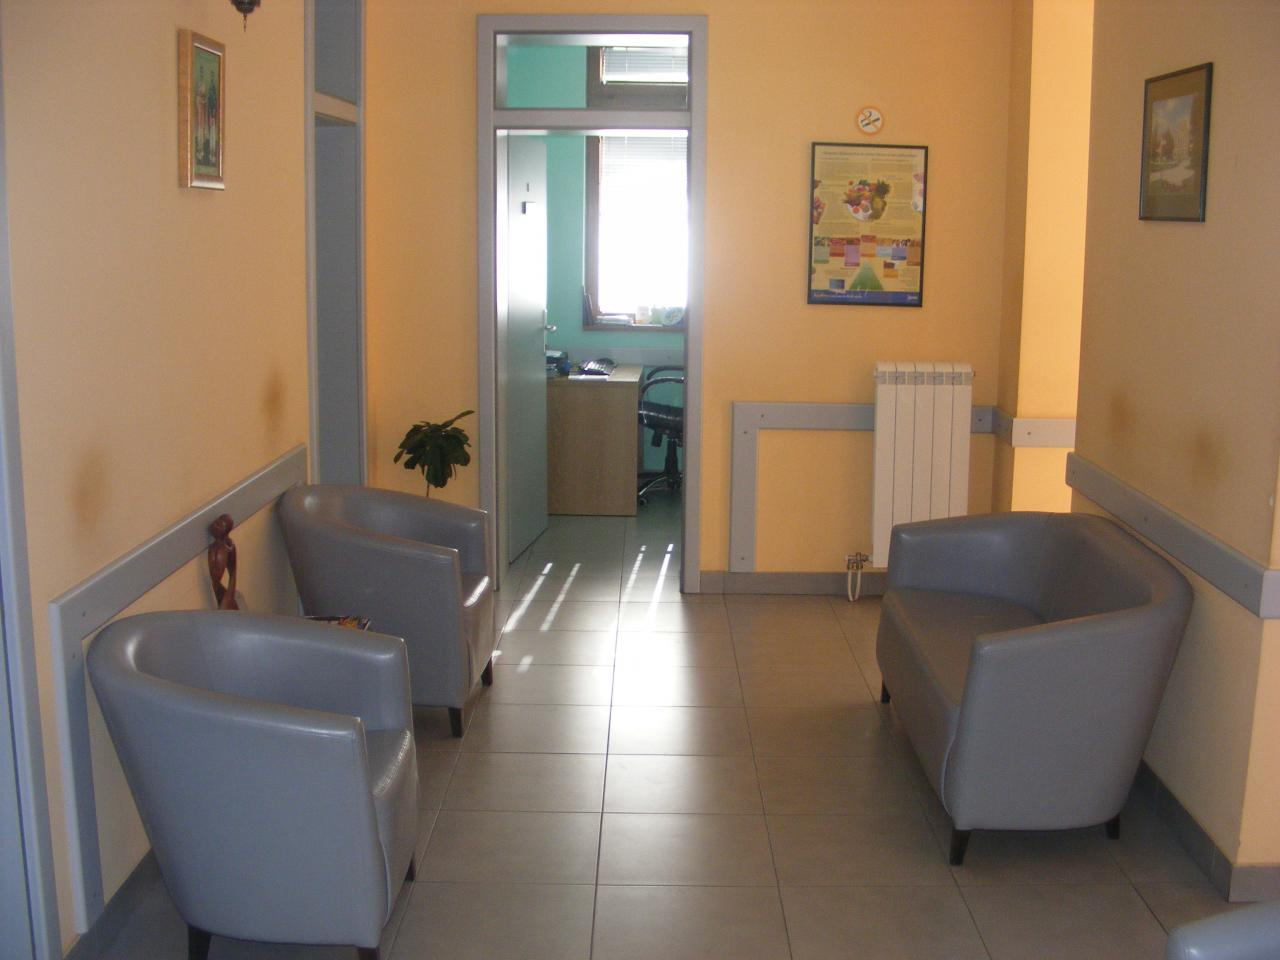 POLIKLINIKA INTERMEDIC Doctors offices Valjevo - Photo 3